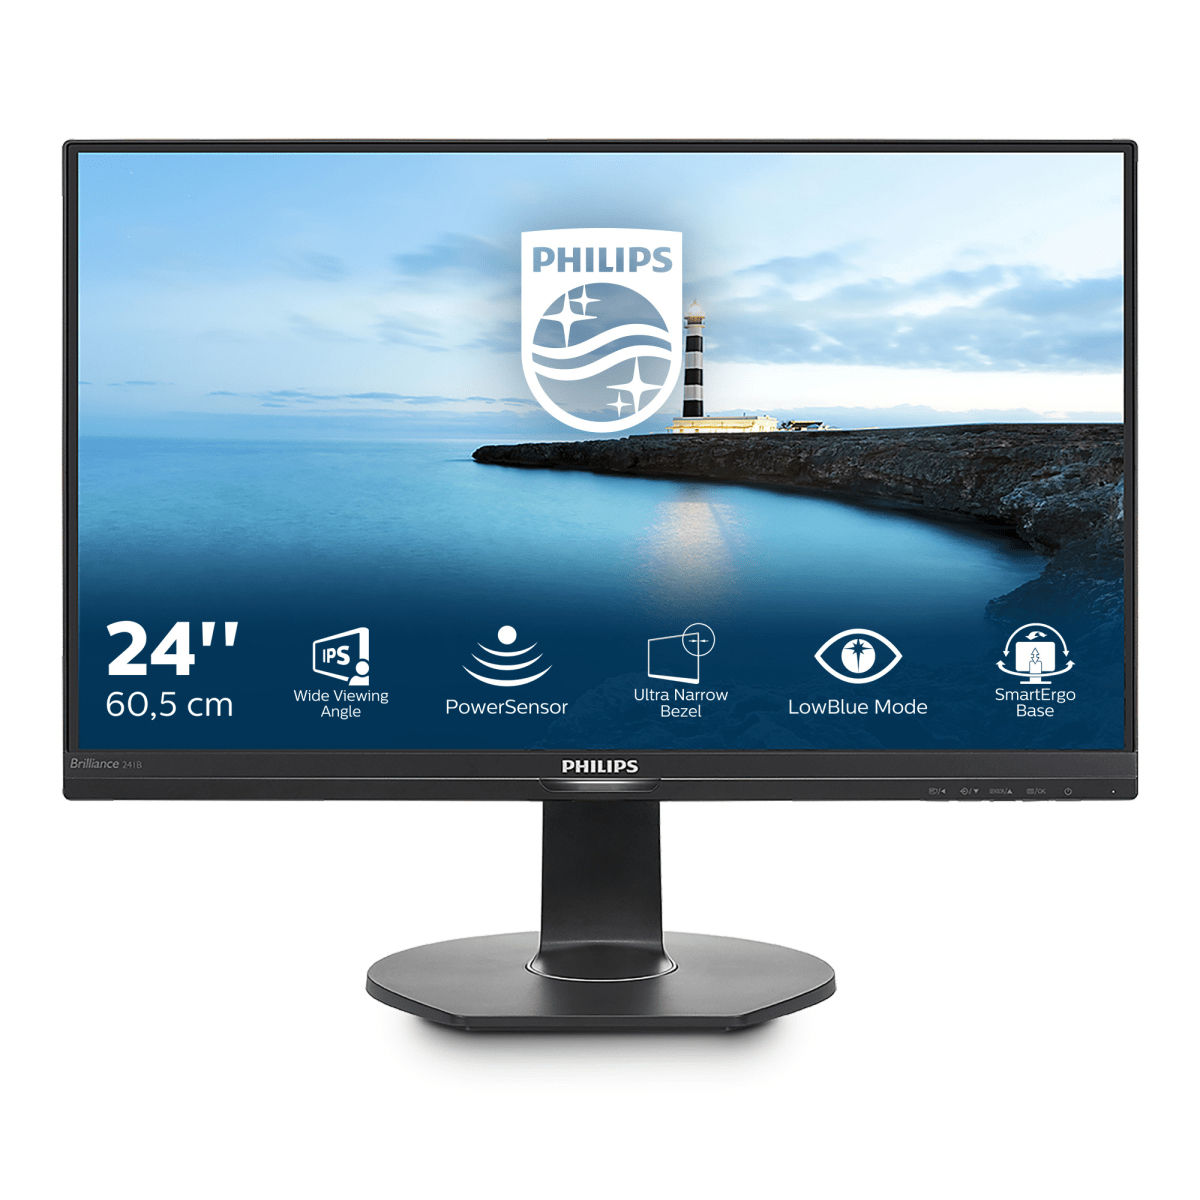 Philips 241B7QPJEB